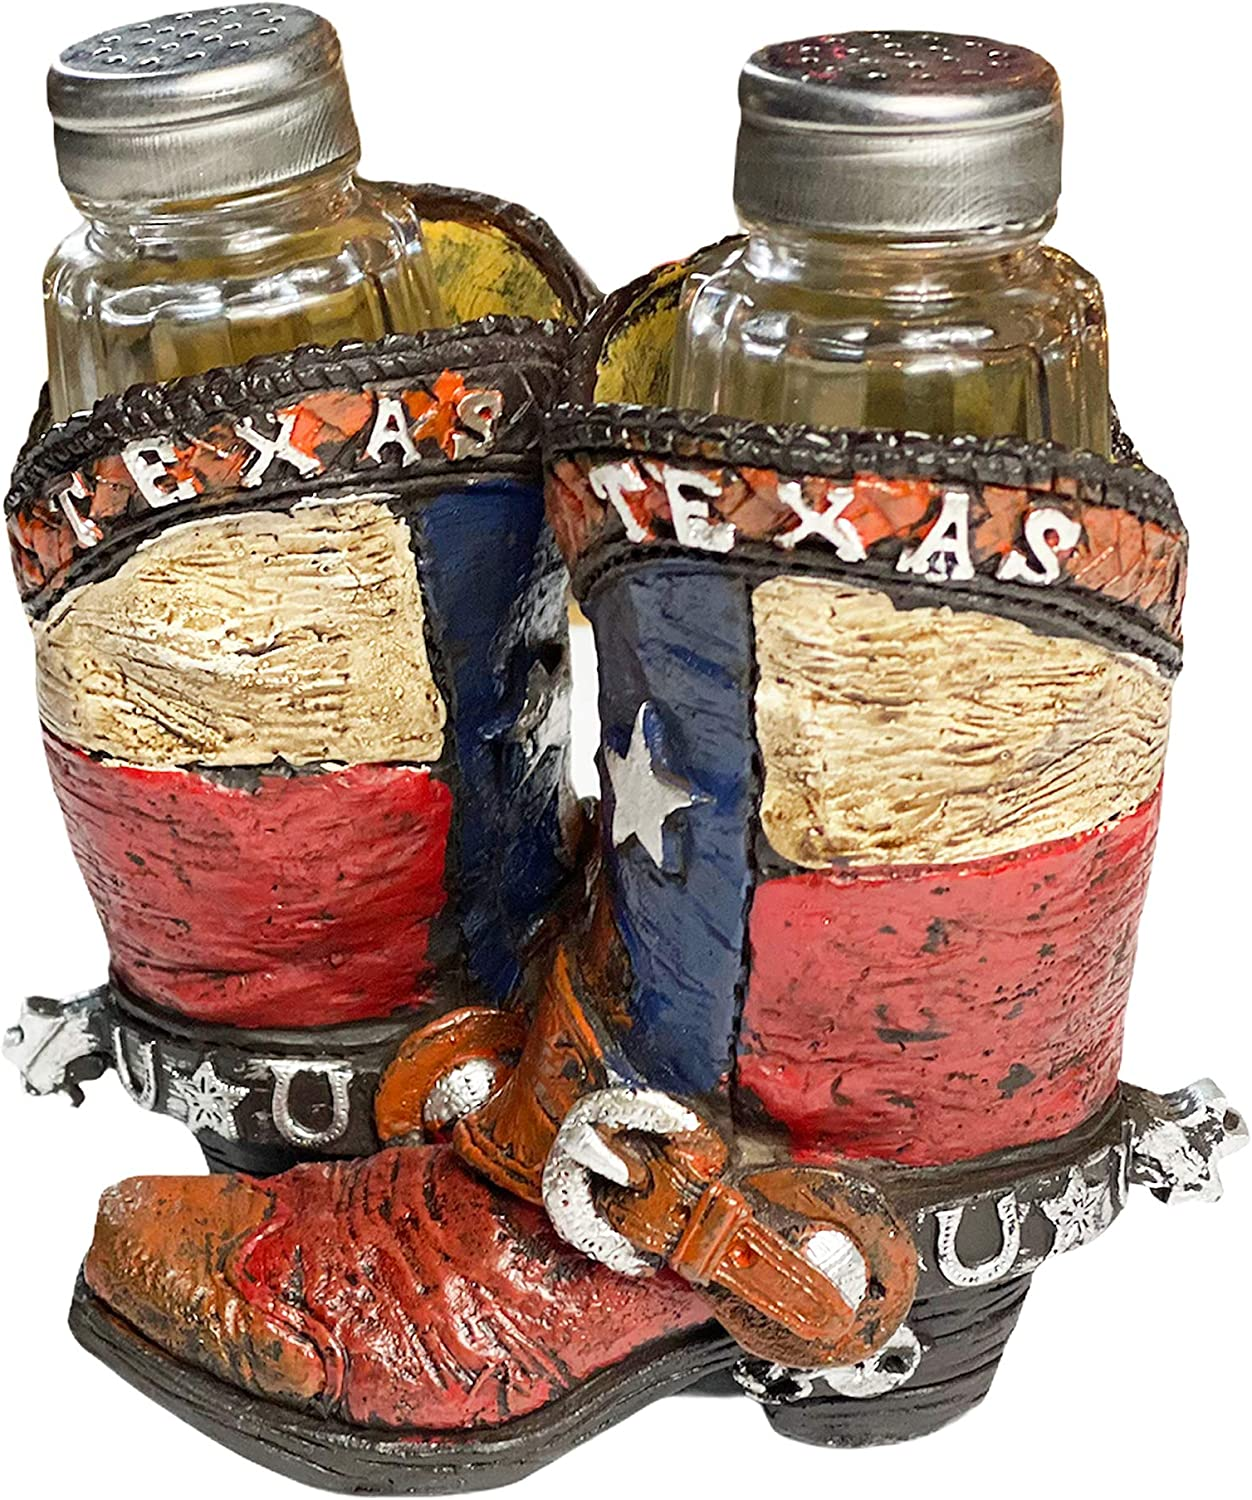 Urbalabs Texas Flag Boots Ceramic Western Salt and Pepper Shaker Caddy Country Ranch Farmhouse Dinner Table Kitchen Counter Decor Glass Set of Cowboy Boots Gifts for Friends and Family (Texas Boots)